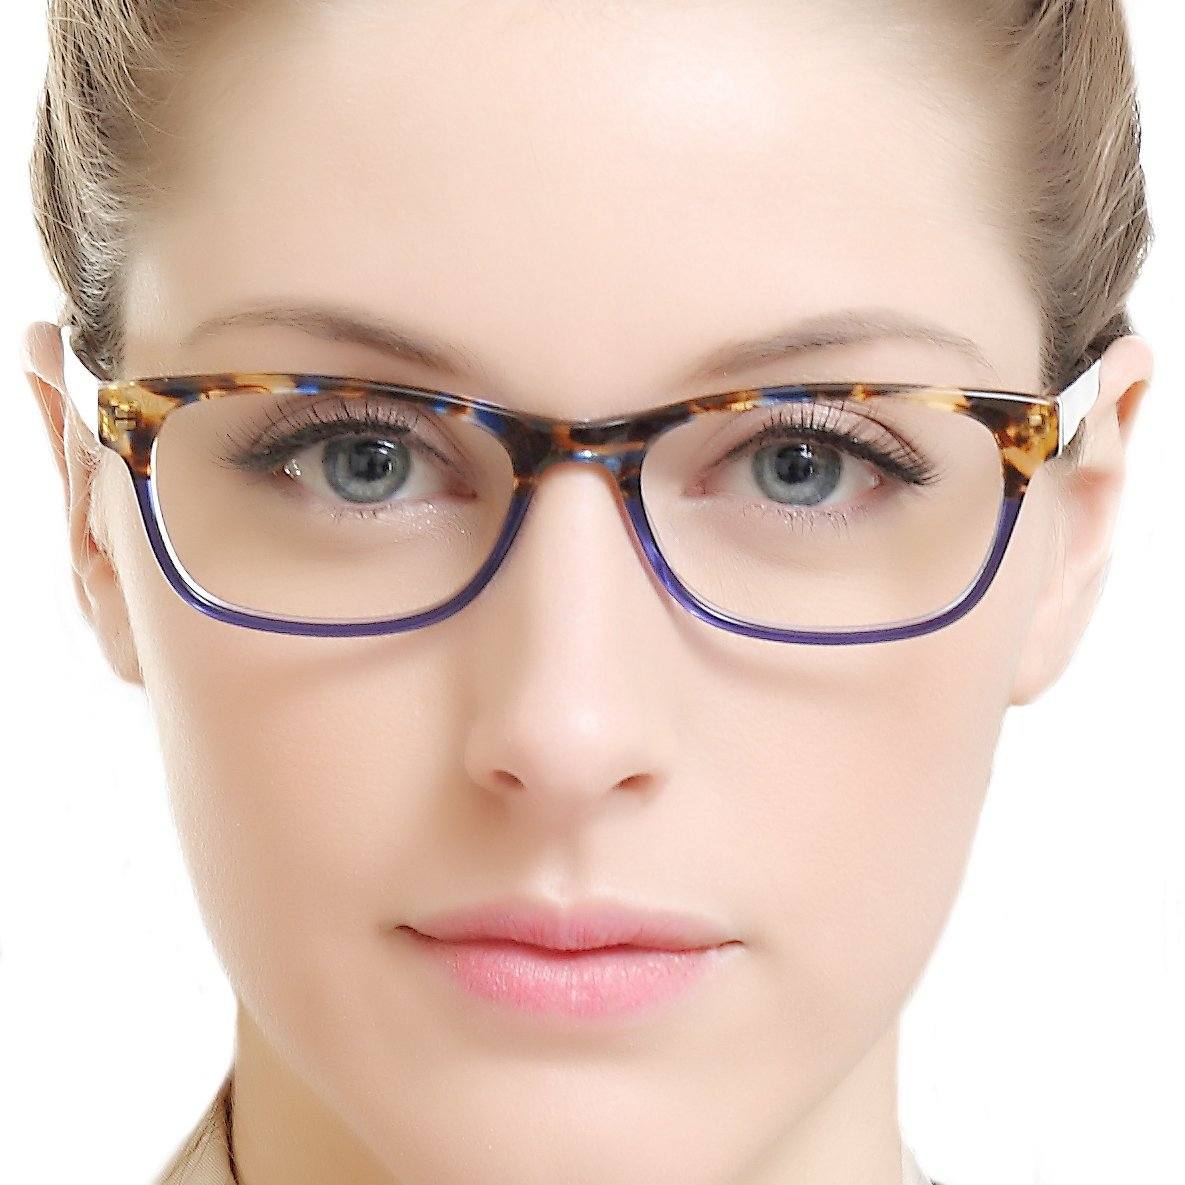 e7cf1993c7 OCCI CHIARI Rectangle Stylish Non-prescription Optical Women Eyewear Frame  With Clear Lens product image